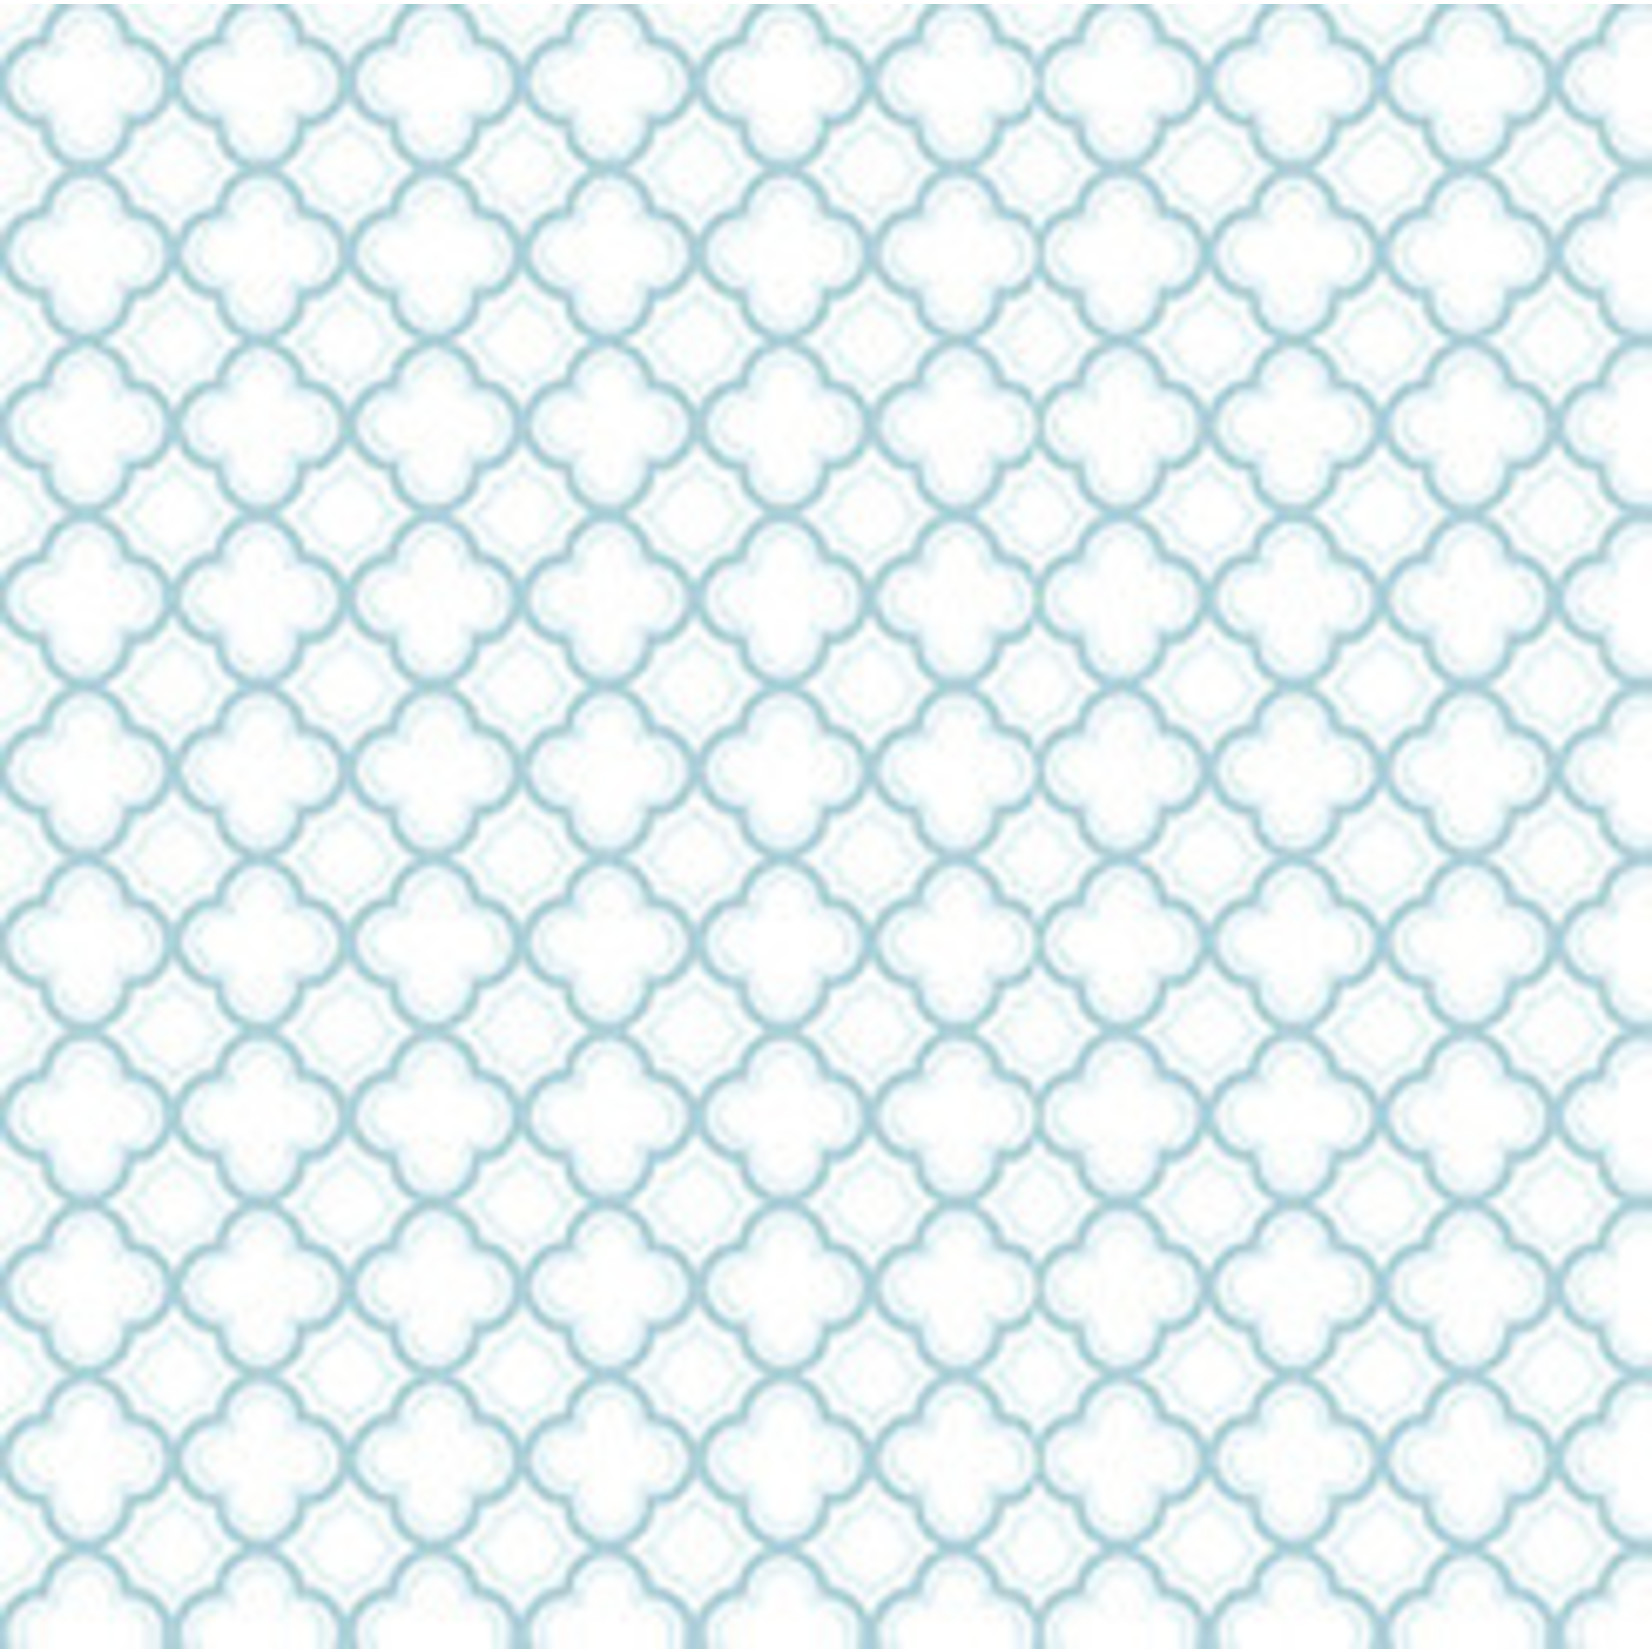 Quilting Treasures SORBETS - GEO BLUE, /cm or $20